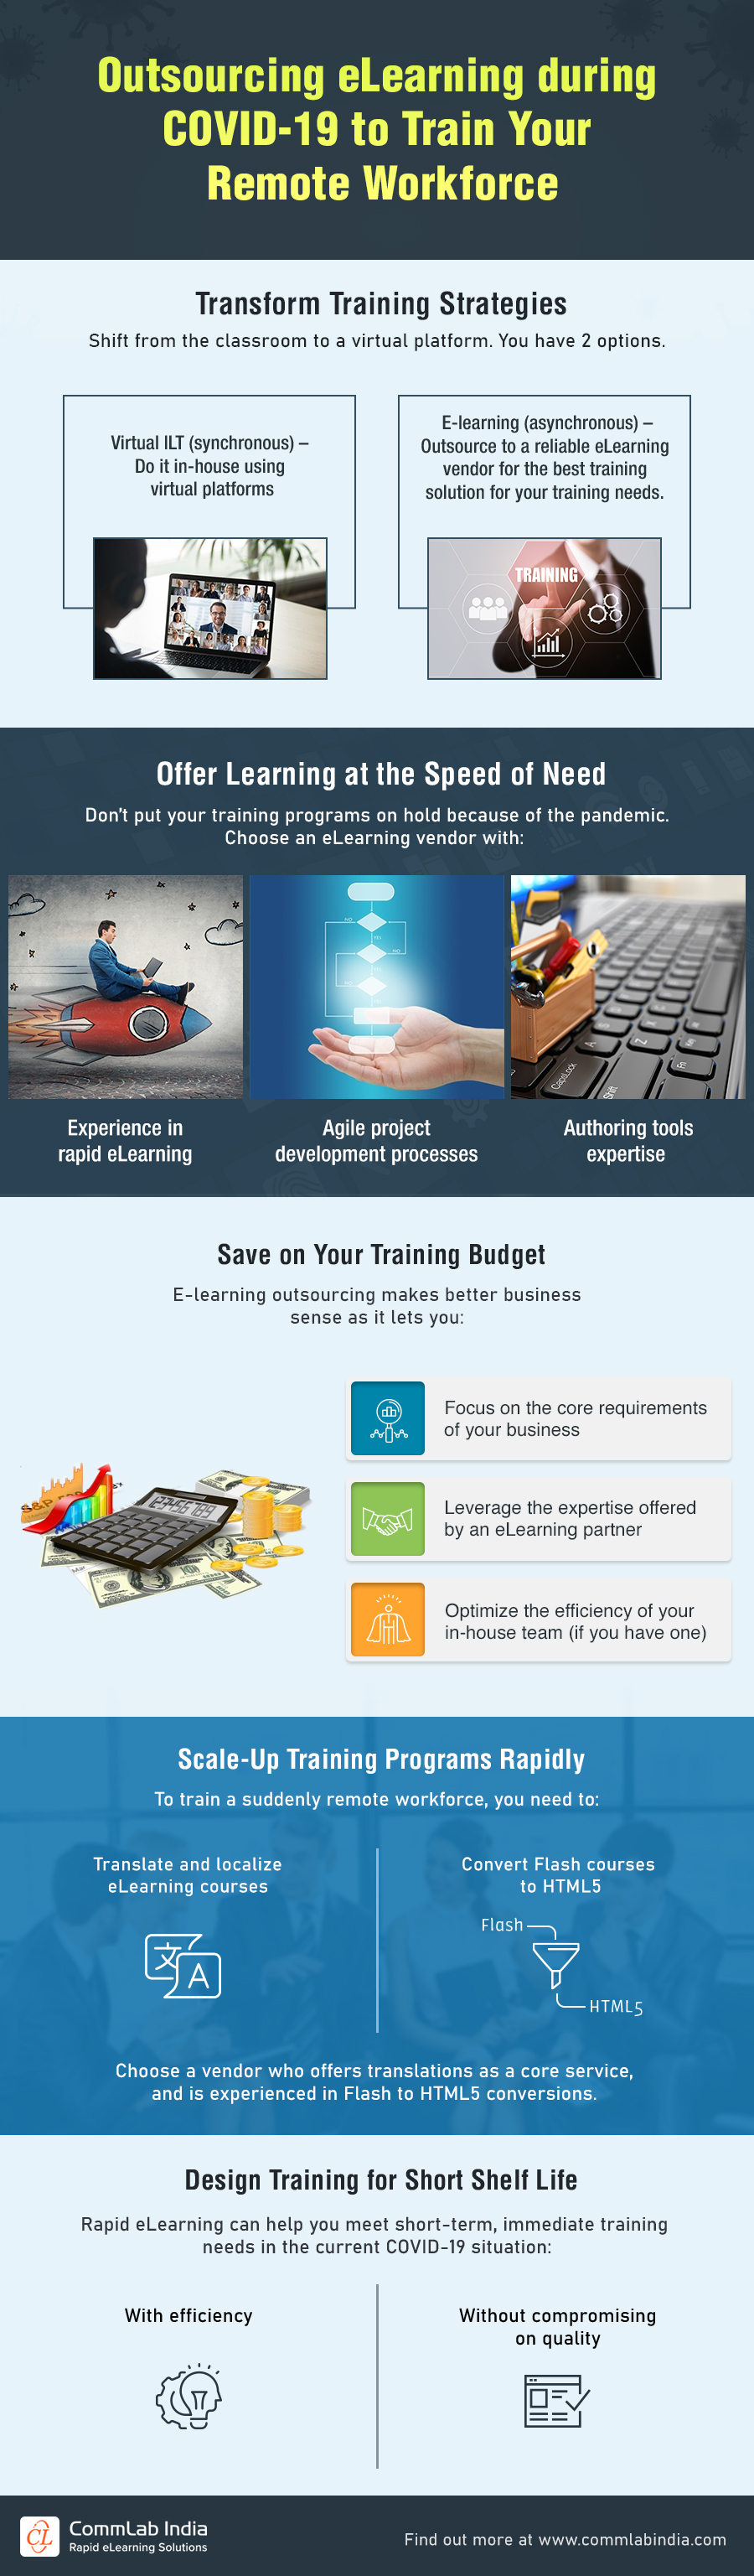 eLearning Outsourcing: Build Effective Training for Your Remote Workforce